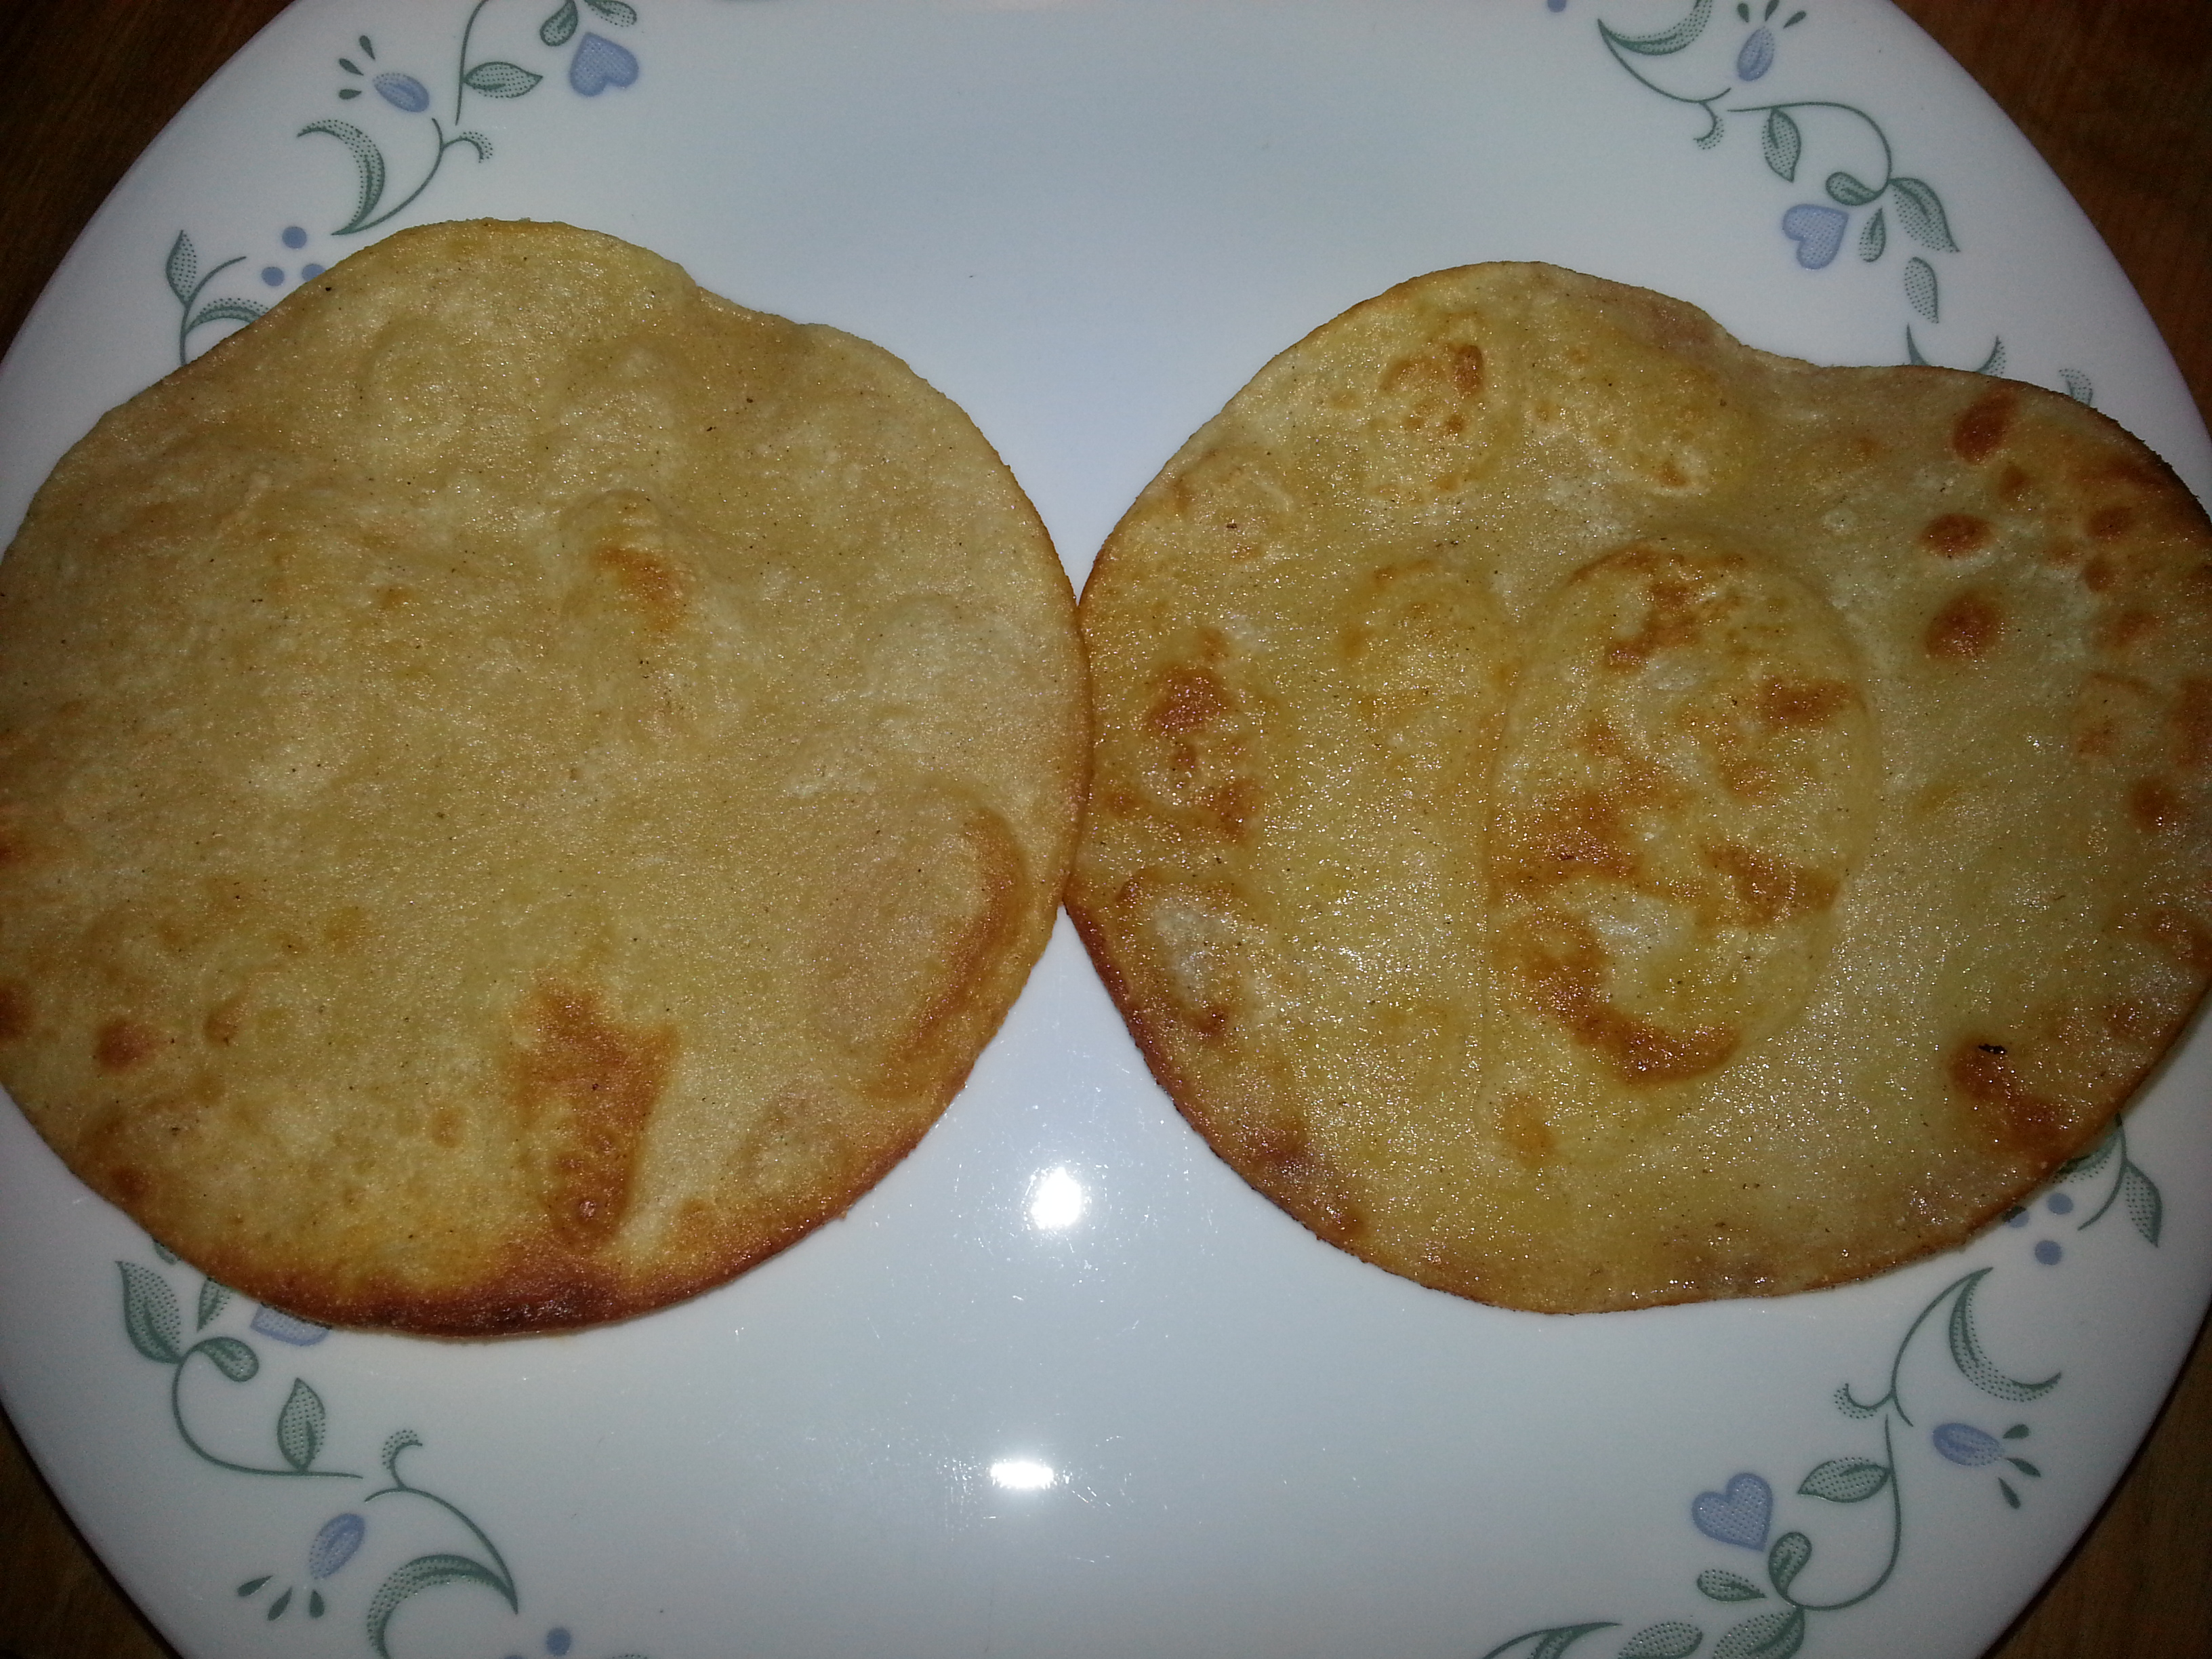 fried tortillas can be topped wtih refried beans to make tostadas.